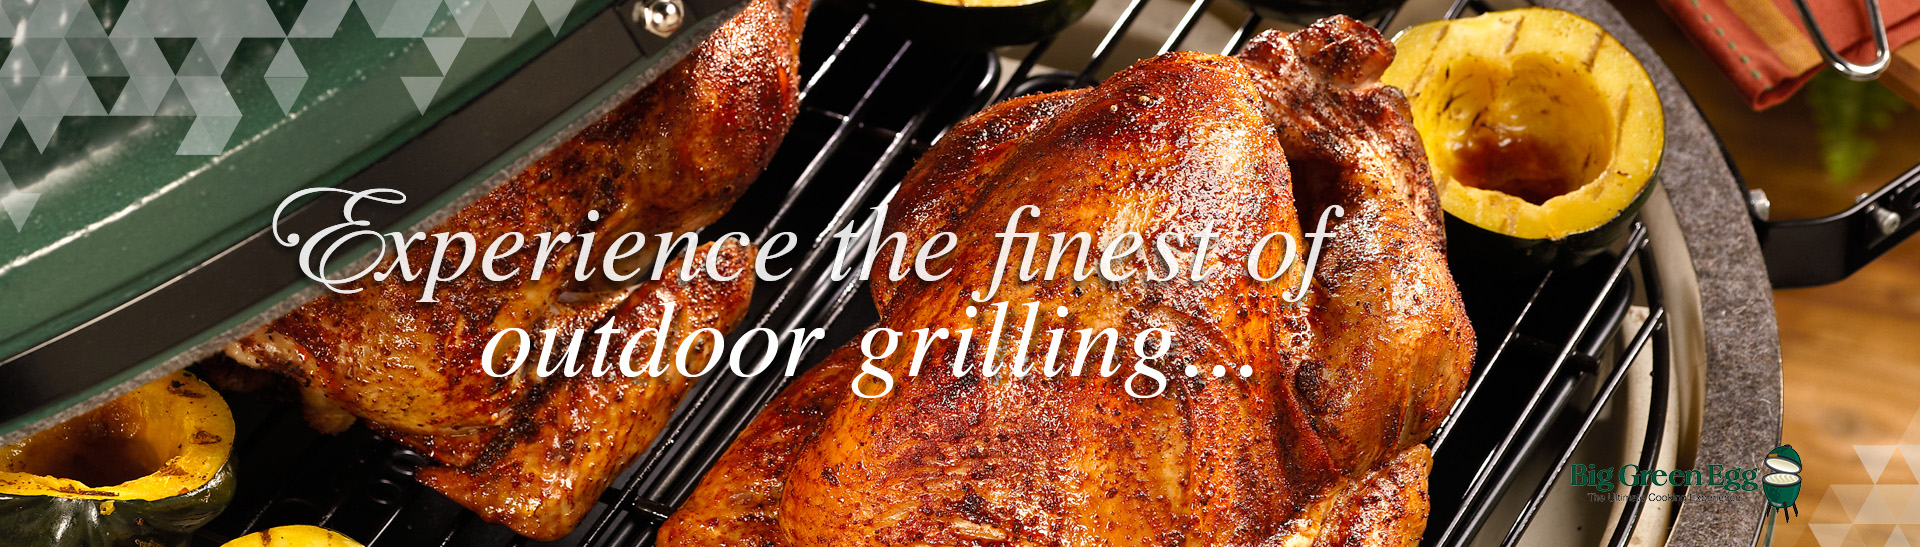 Experience the finest of outdoor grilling